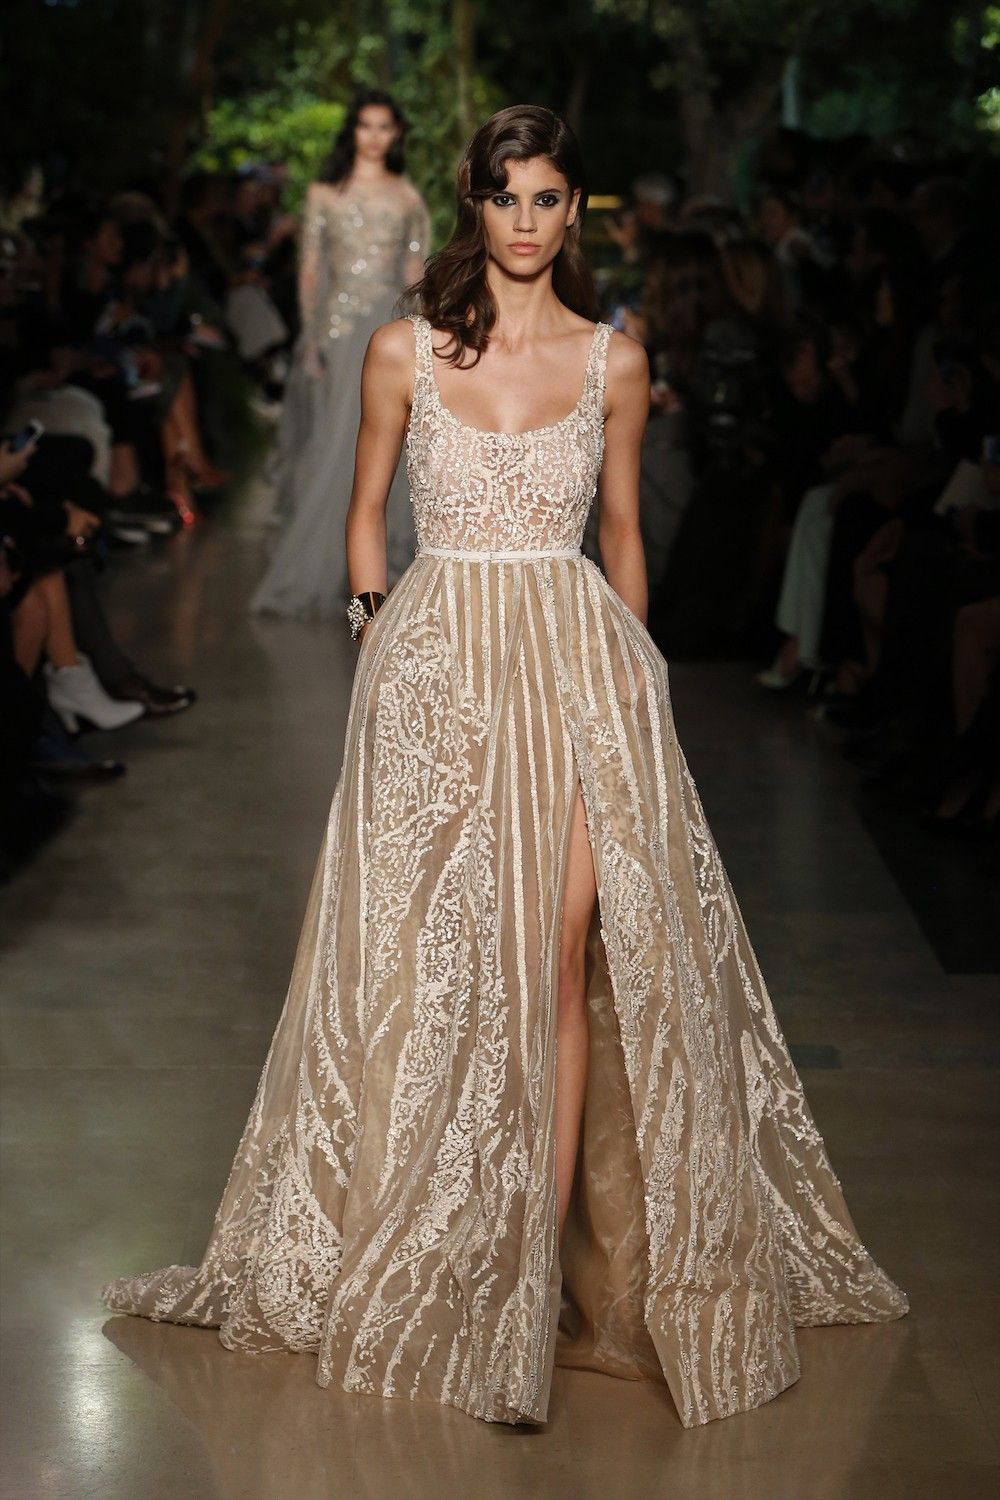 Slideshow: 39 Dream Wedding Dresses Straight From The Couture Runways